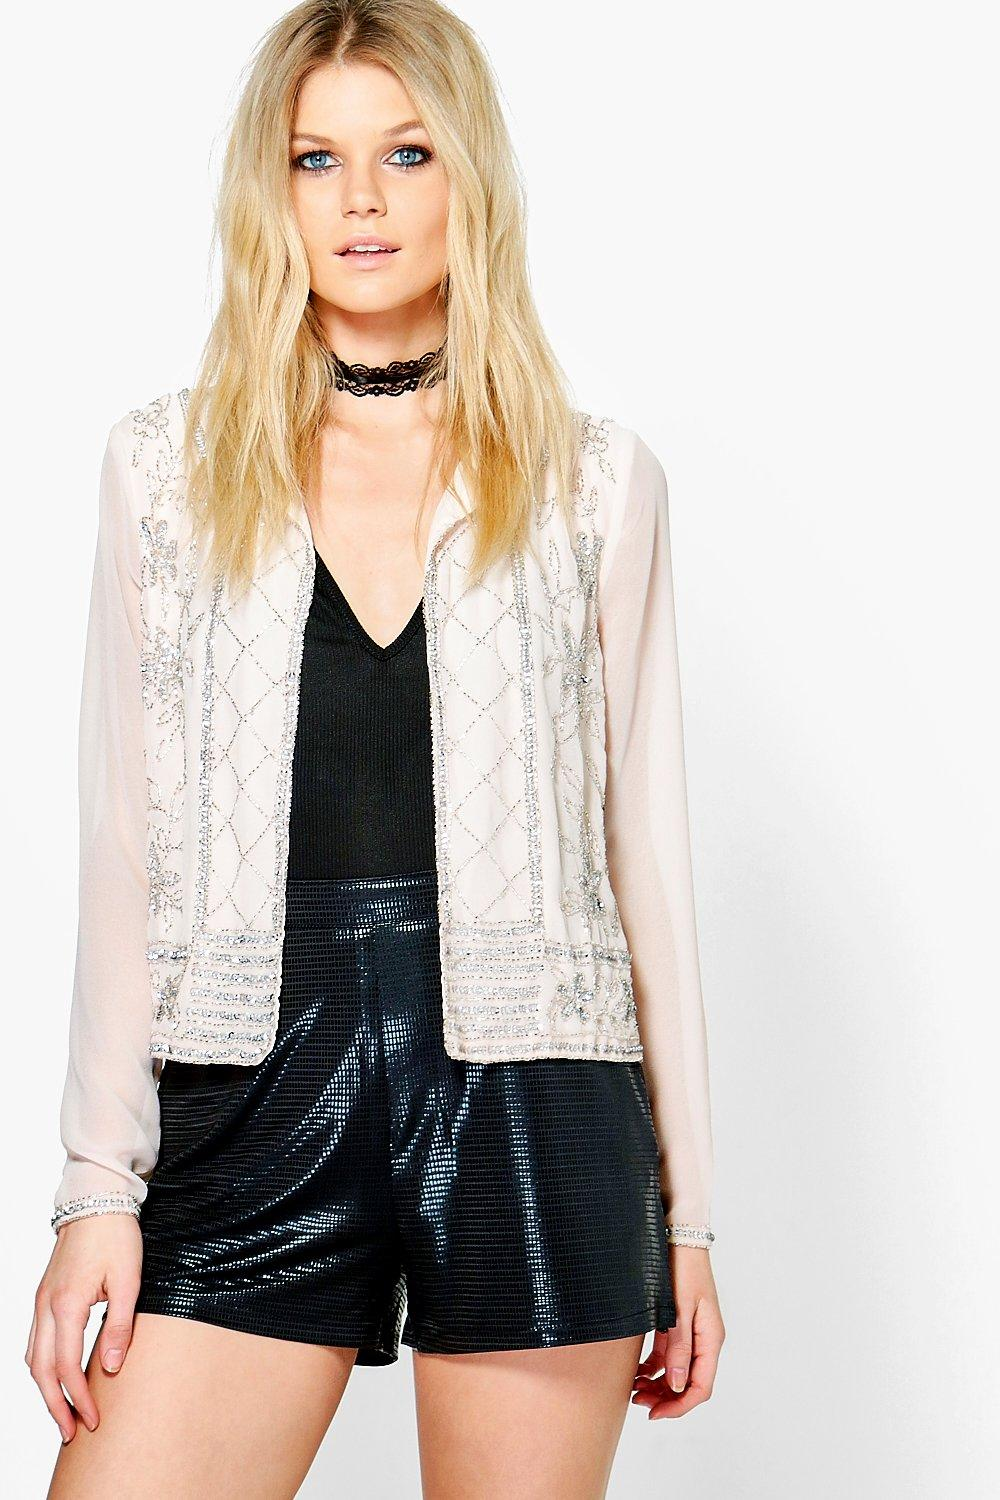 Annabel Boutique Embellished Jacket